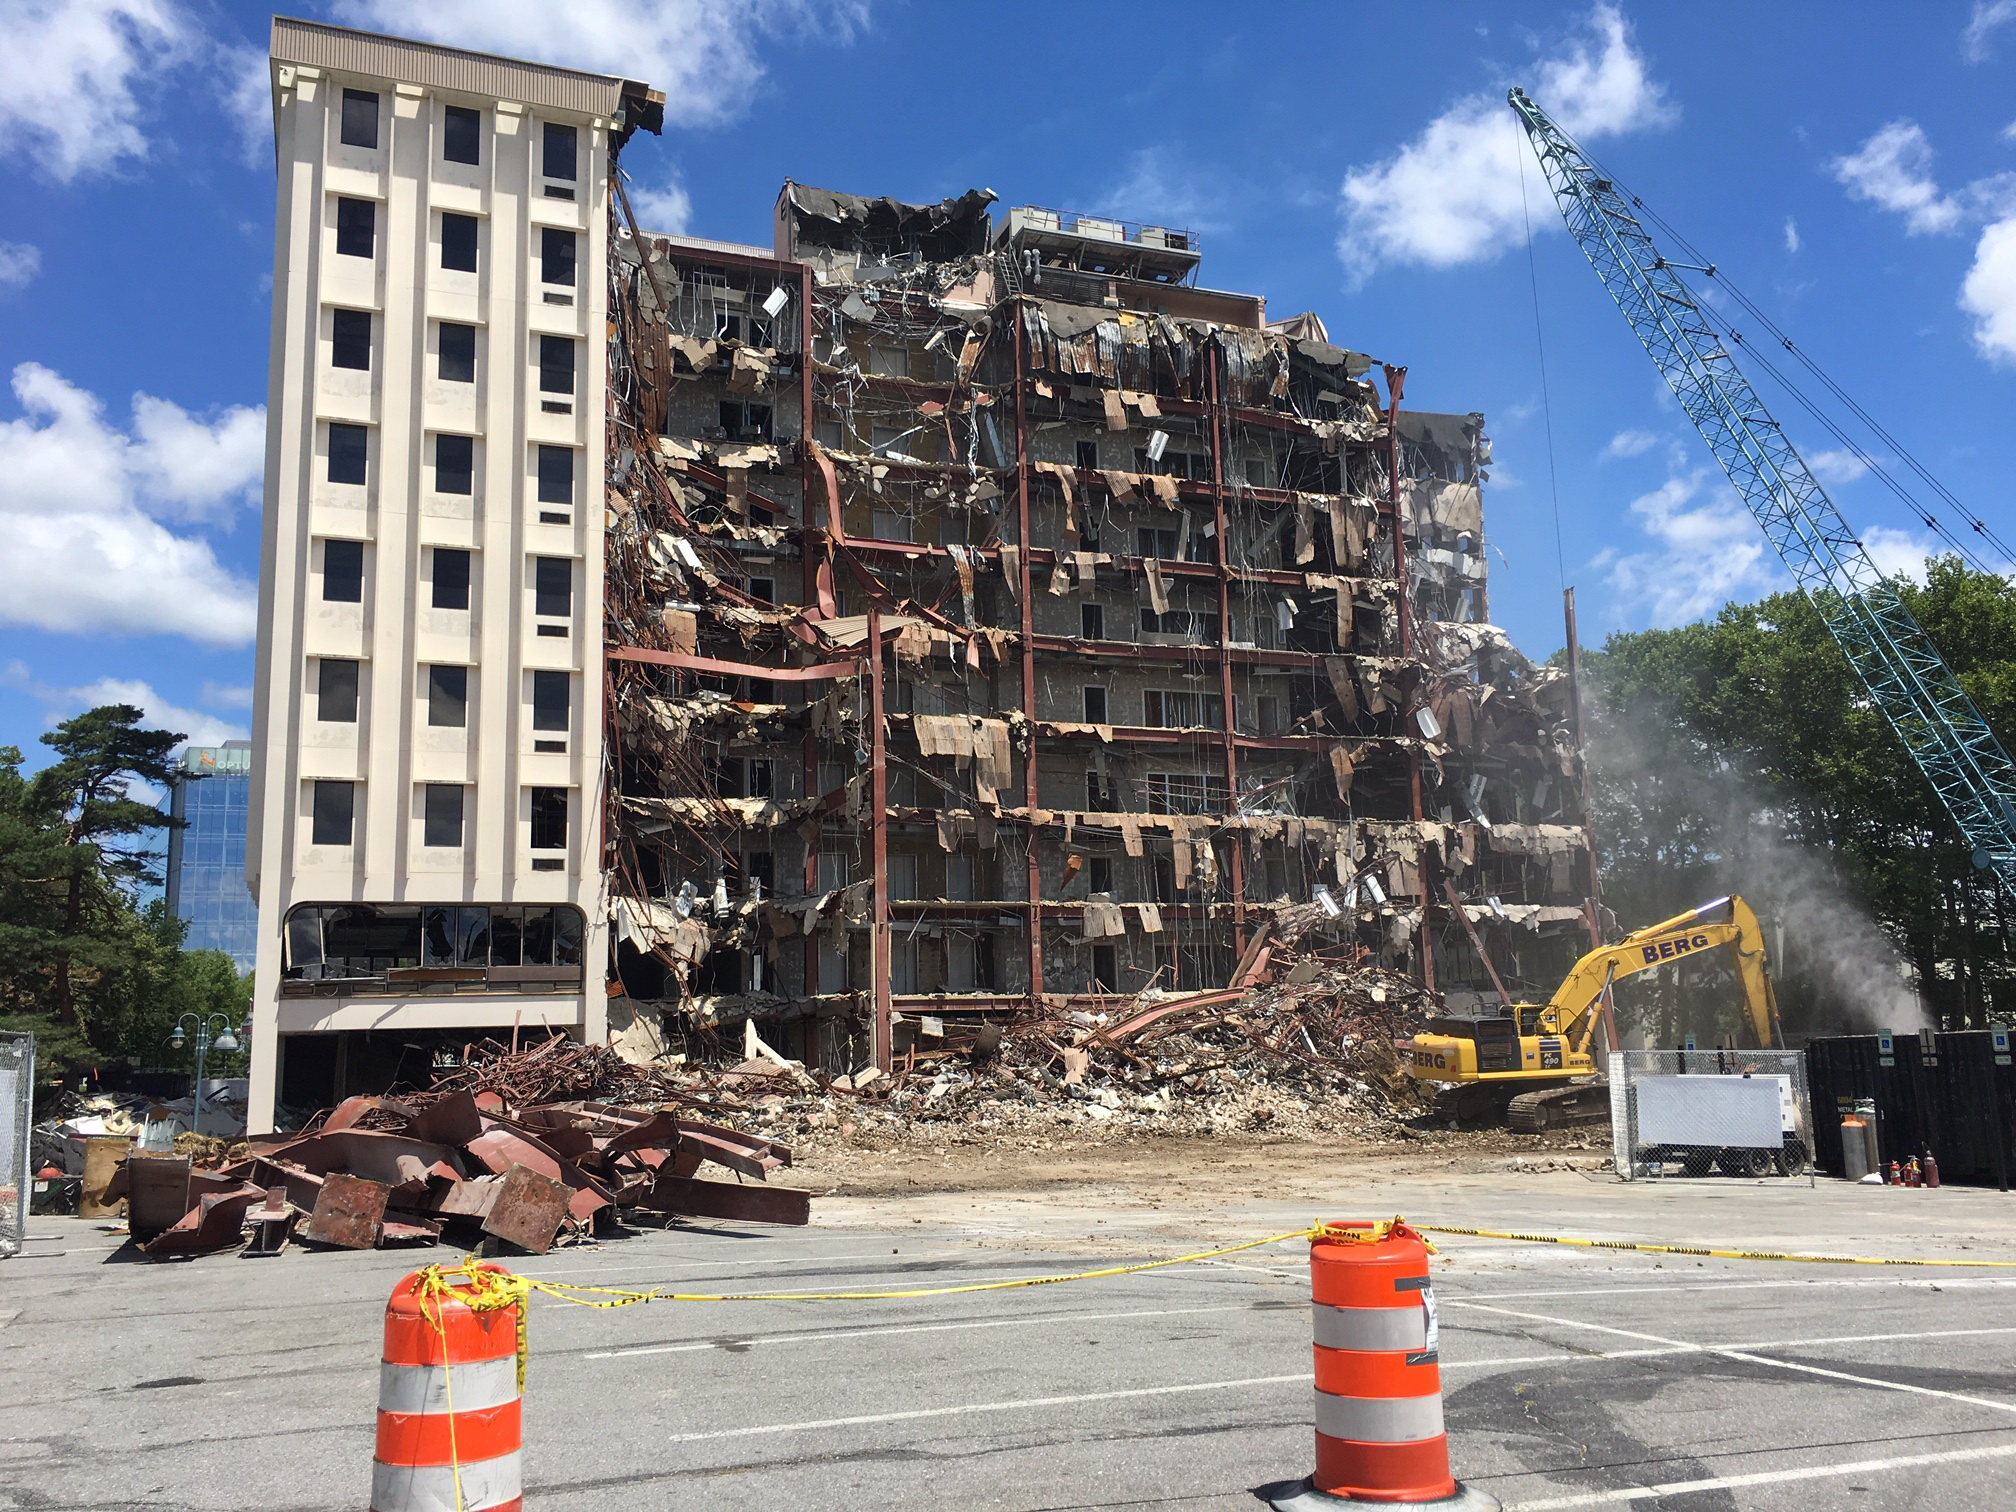 Columbia's oldest high-rise being demolished to make way for more development